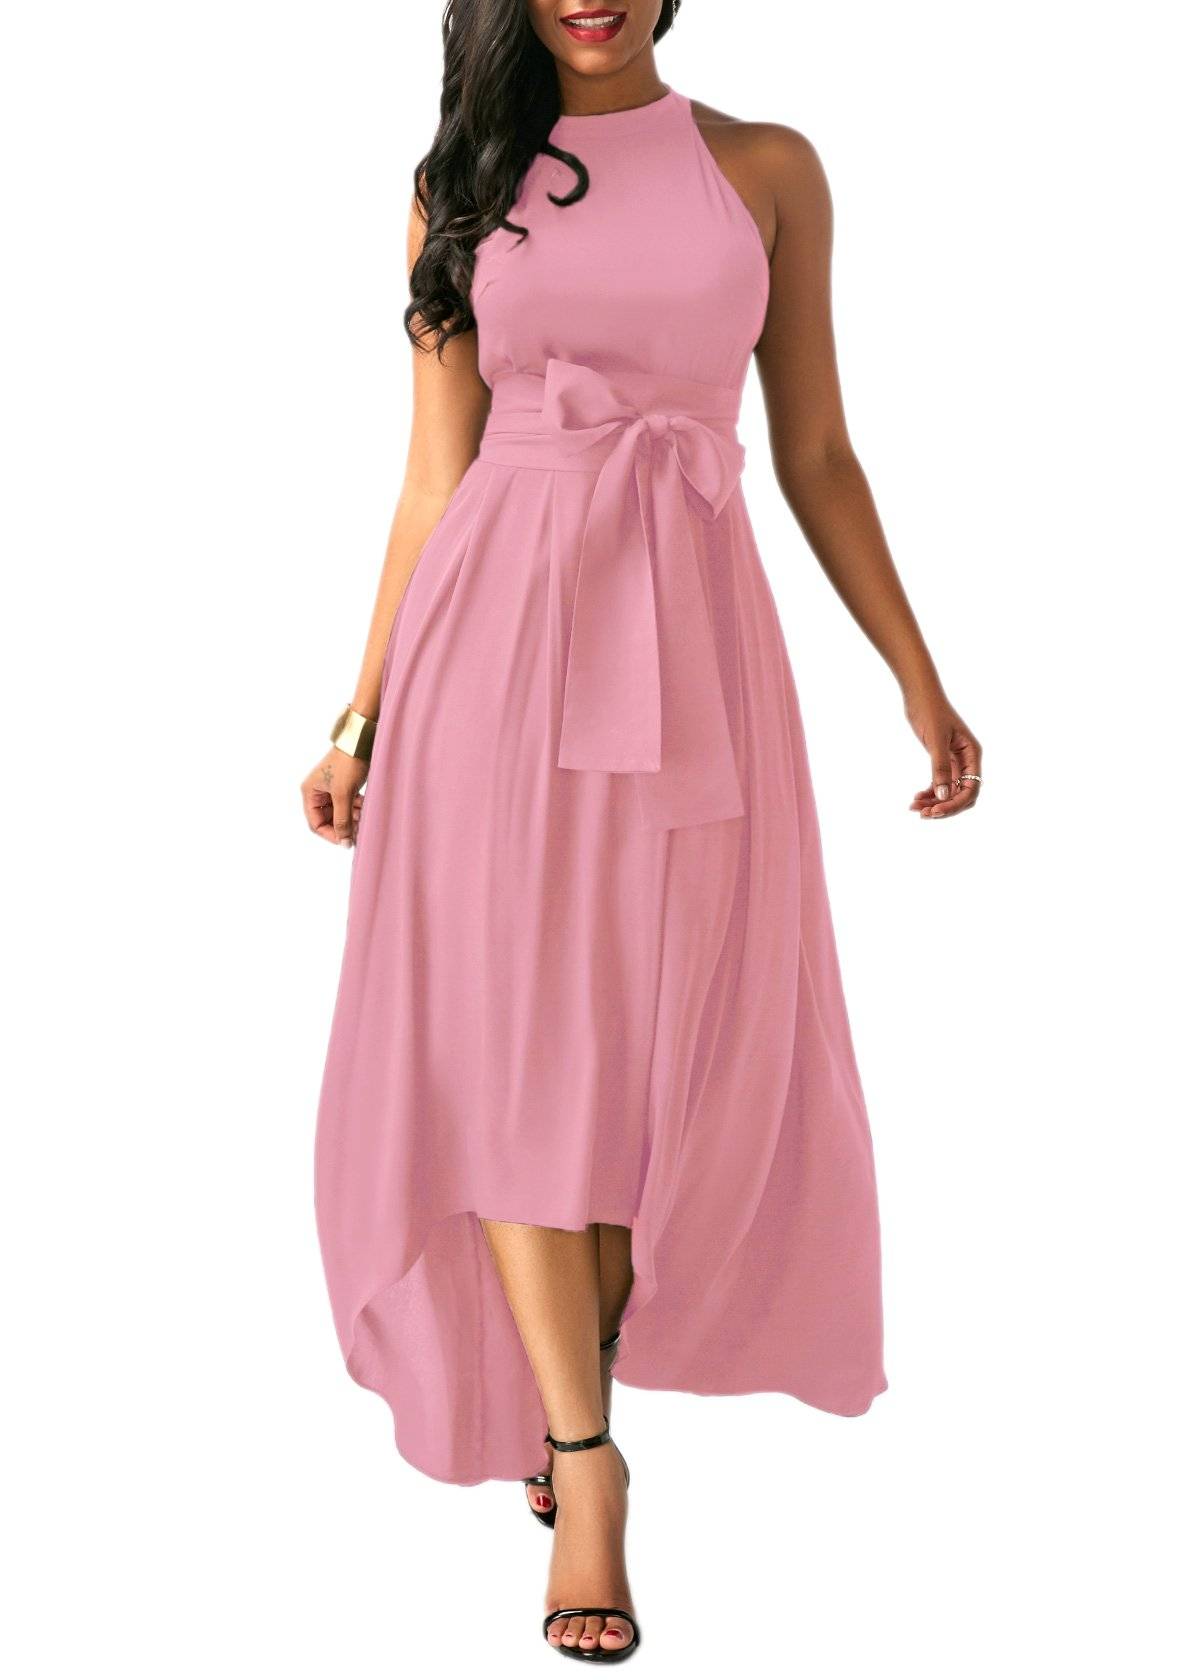 Lalagen Womens Plus Size Sleeveless Belted Party Maxi Dress with Cardigan by Lalagen (Image #3)